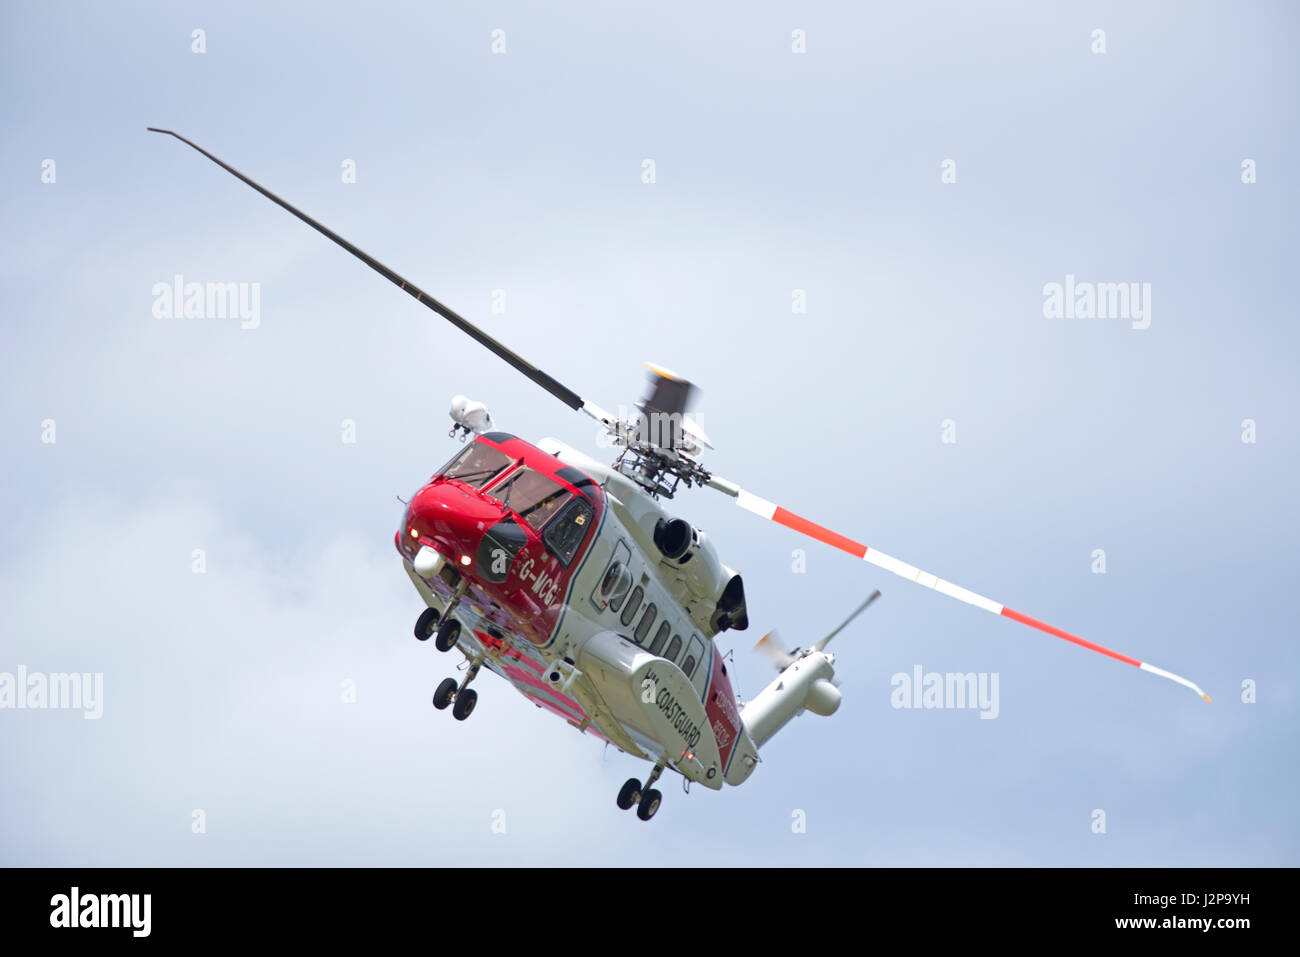 Coastguard helicopter departing from home base at Inverness Airport on an emergency call out. - Stock Image